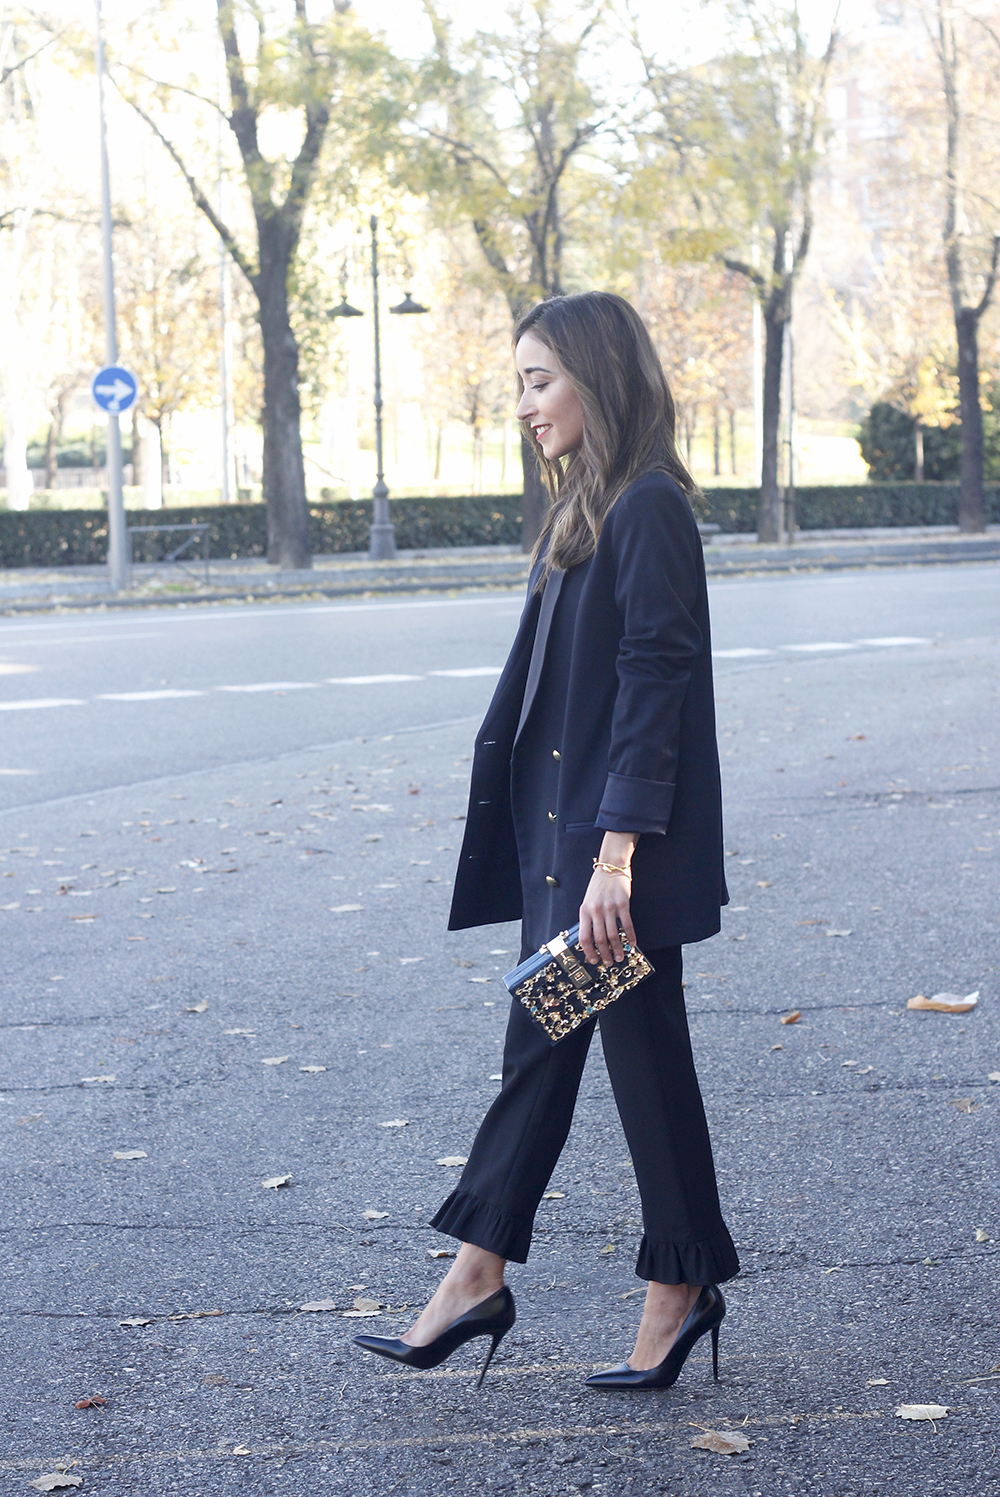 Black trousers with a ruffle on the bottom uterqüe bag accessories black heels blazer outfit style fashion03